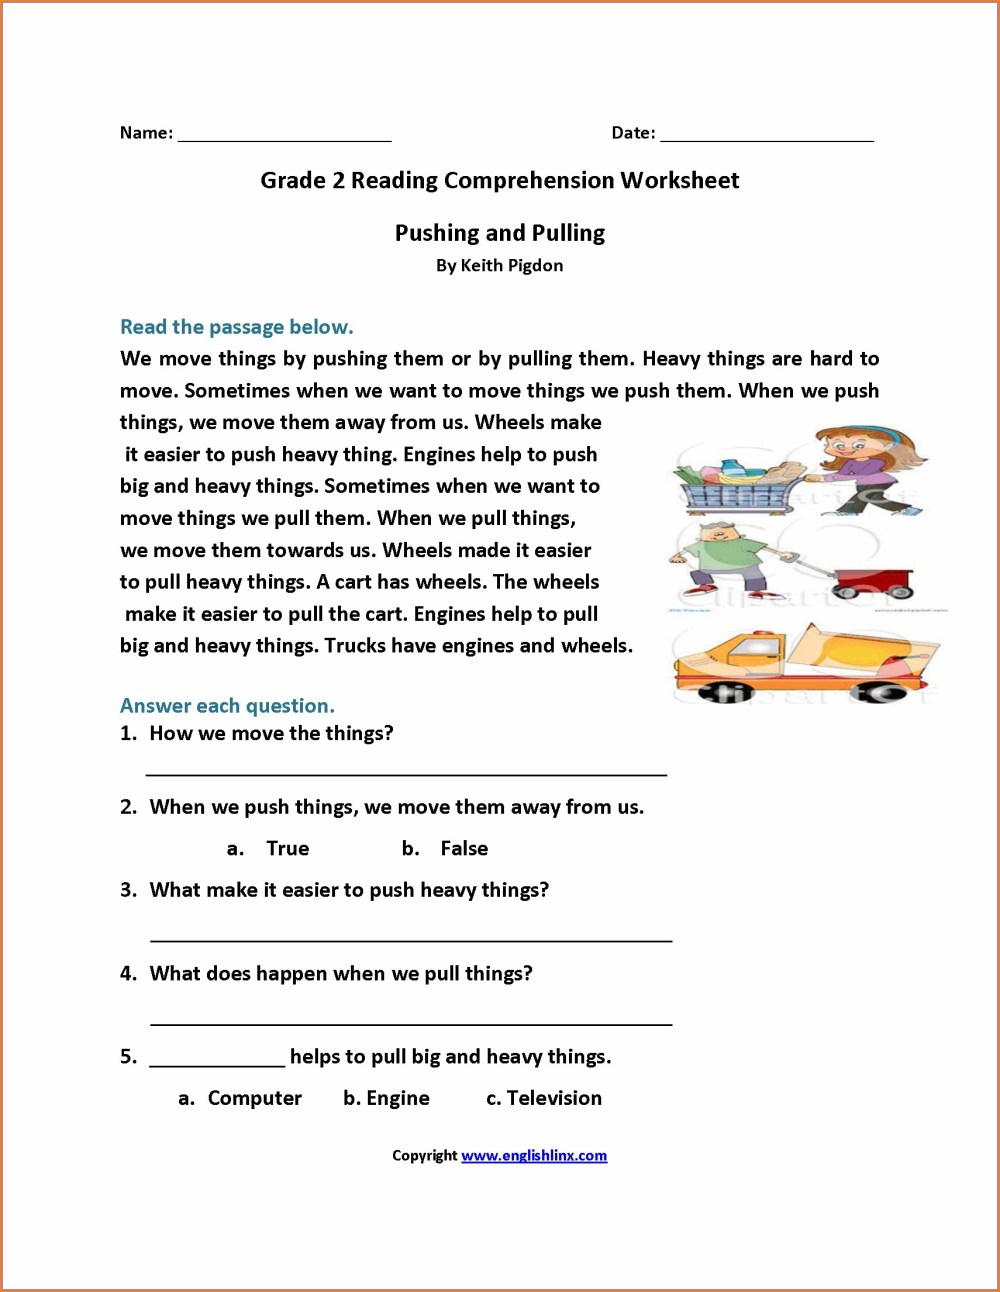 medium resolution of Homeschooling Worksheets Grand Canyon   Printable Worksheets and Activities  for Teachers